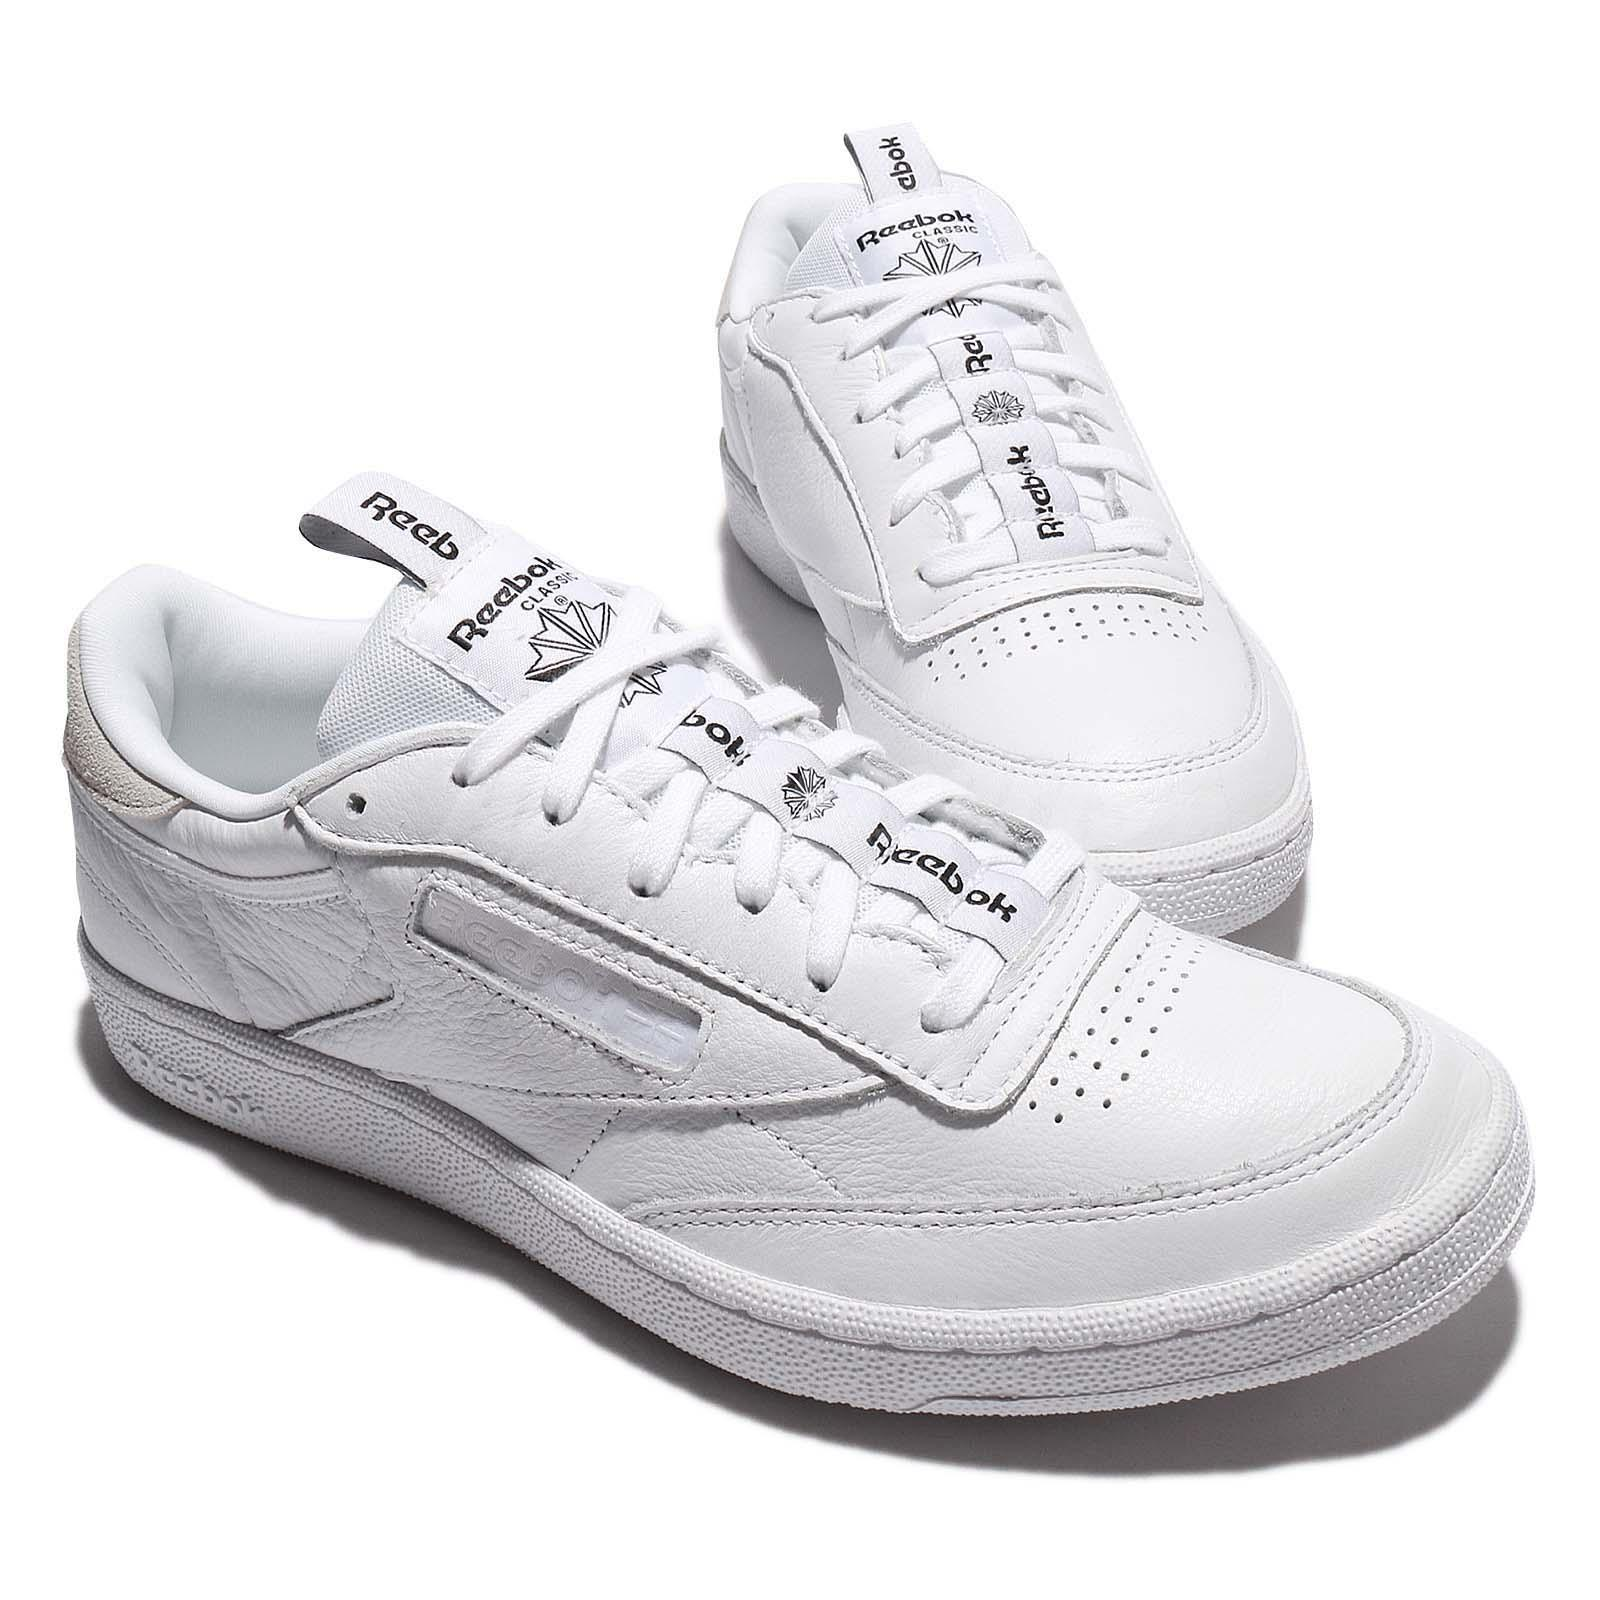 5175bba88a50 Reebok Club C 85 IT Iconic Taping Pack White Skull Grey Men Classic BS6212  XnayxnqE